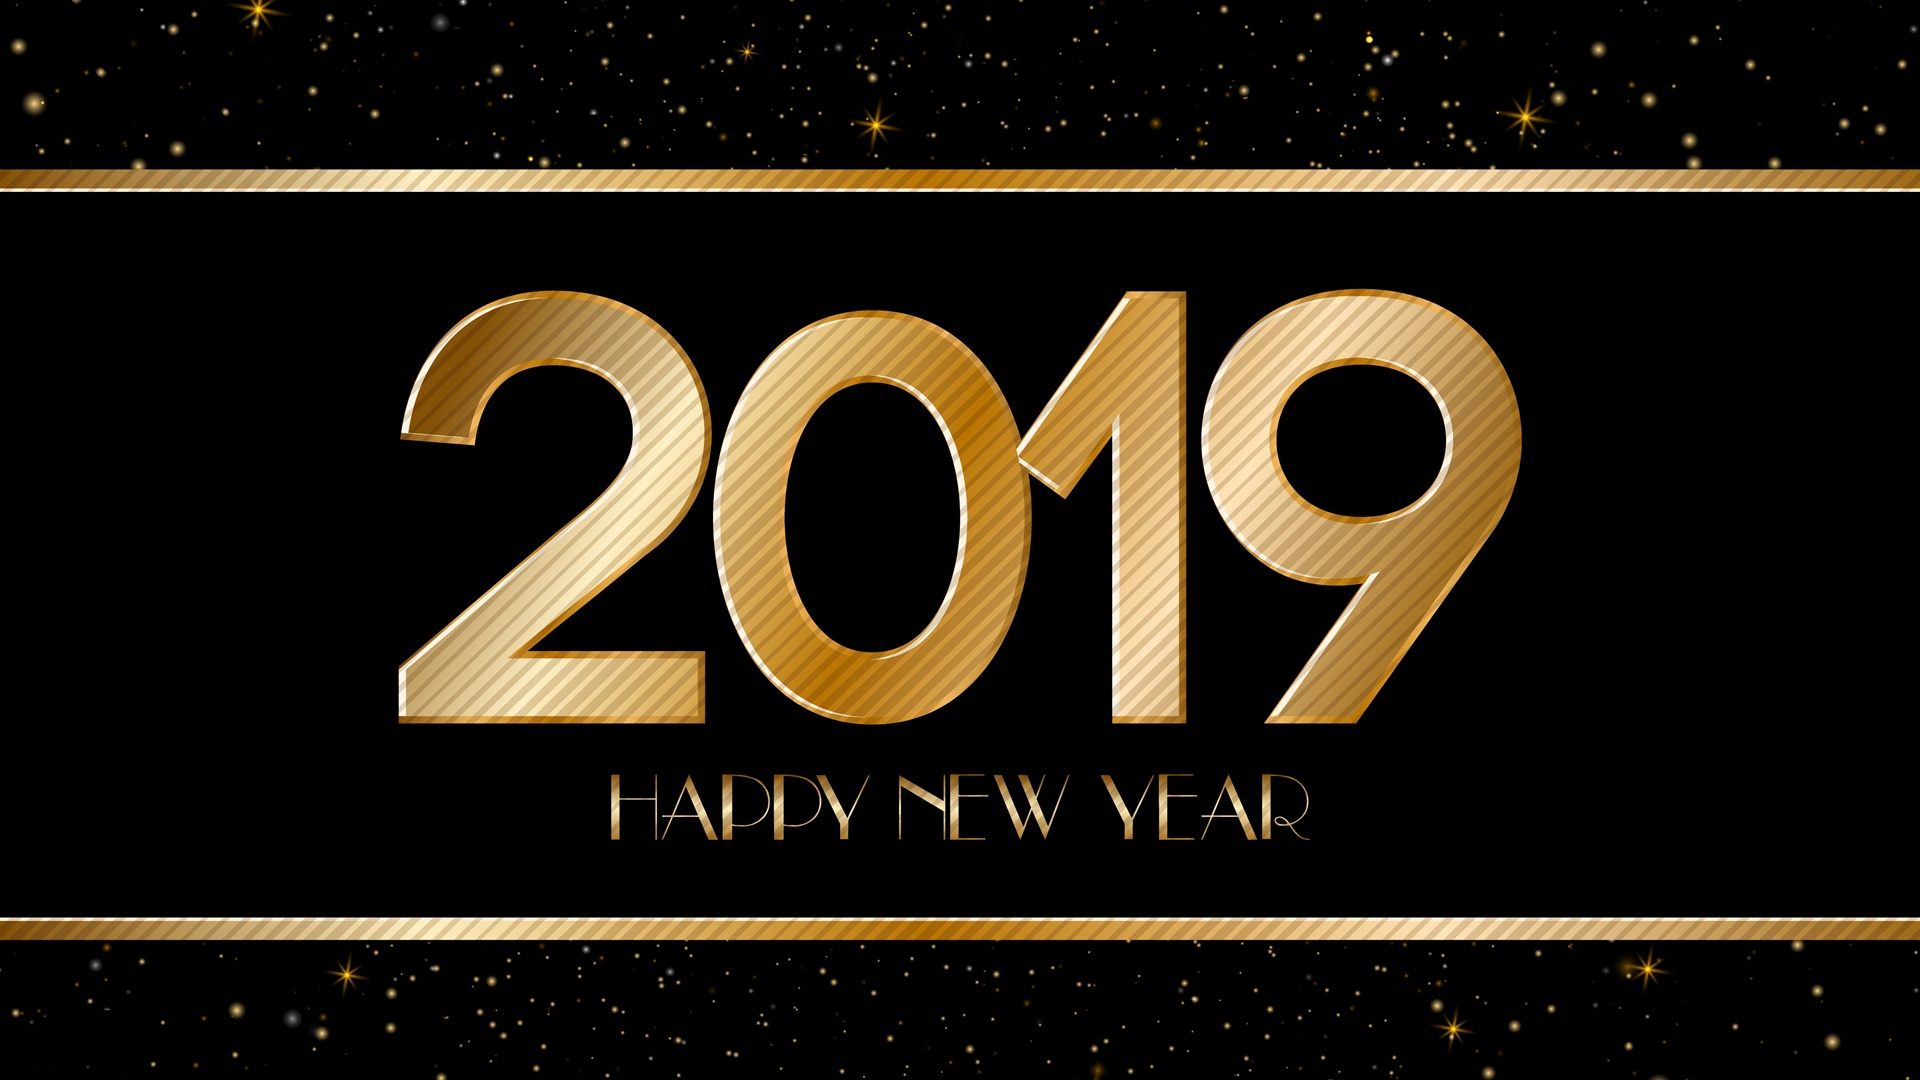 Happy New Year 2019 Images Download • AtulHost